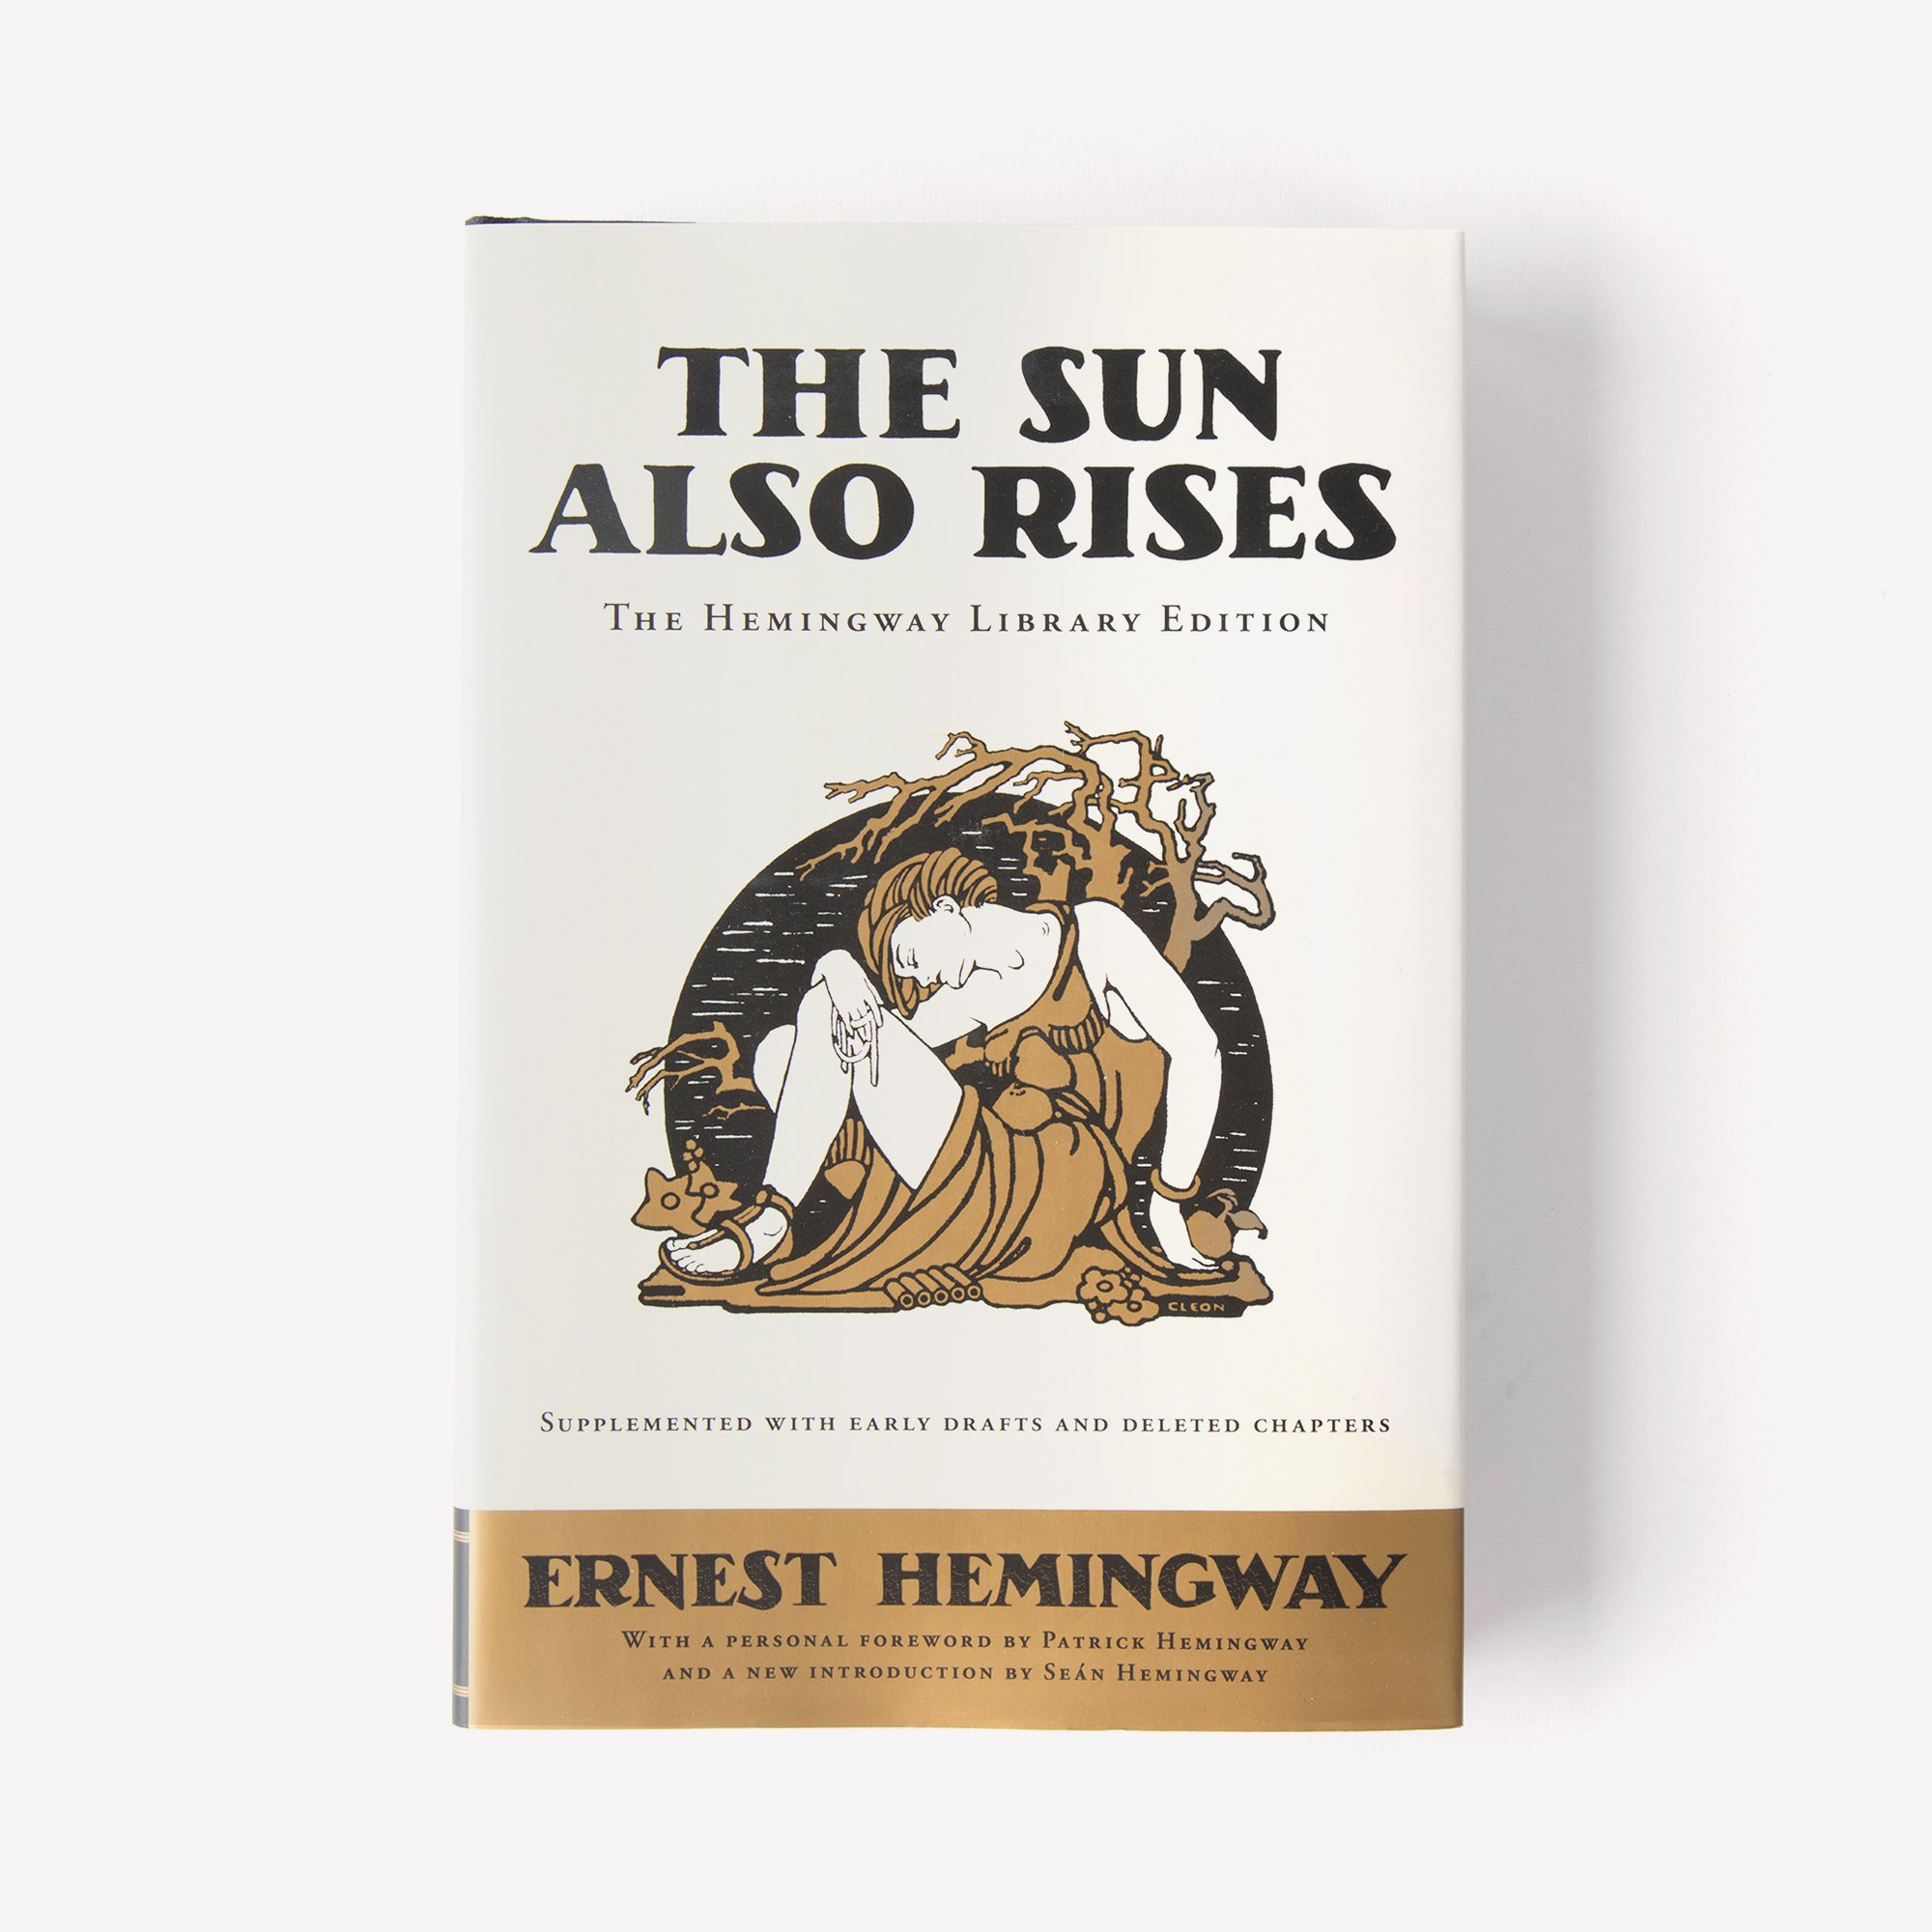 literature bespoke post the sun also rises the hemingway library edition scribner 26 26